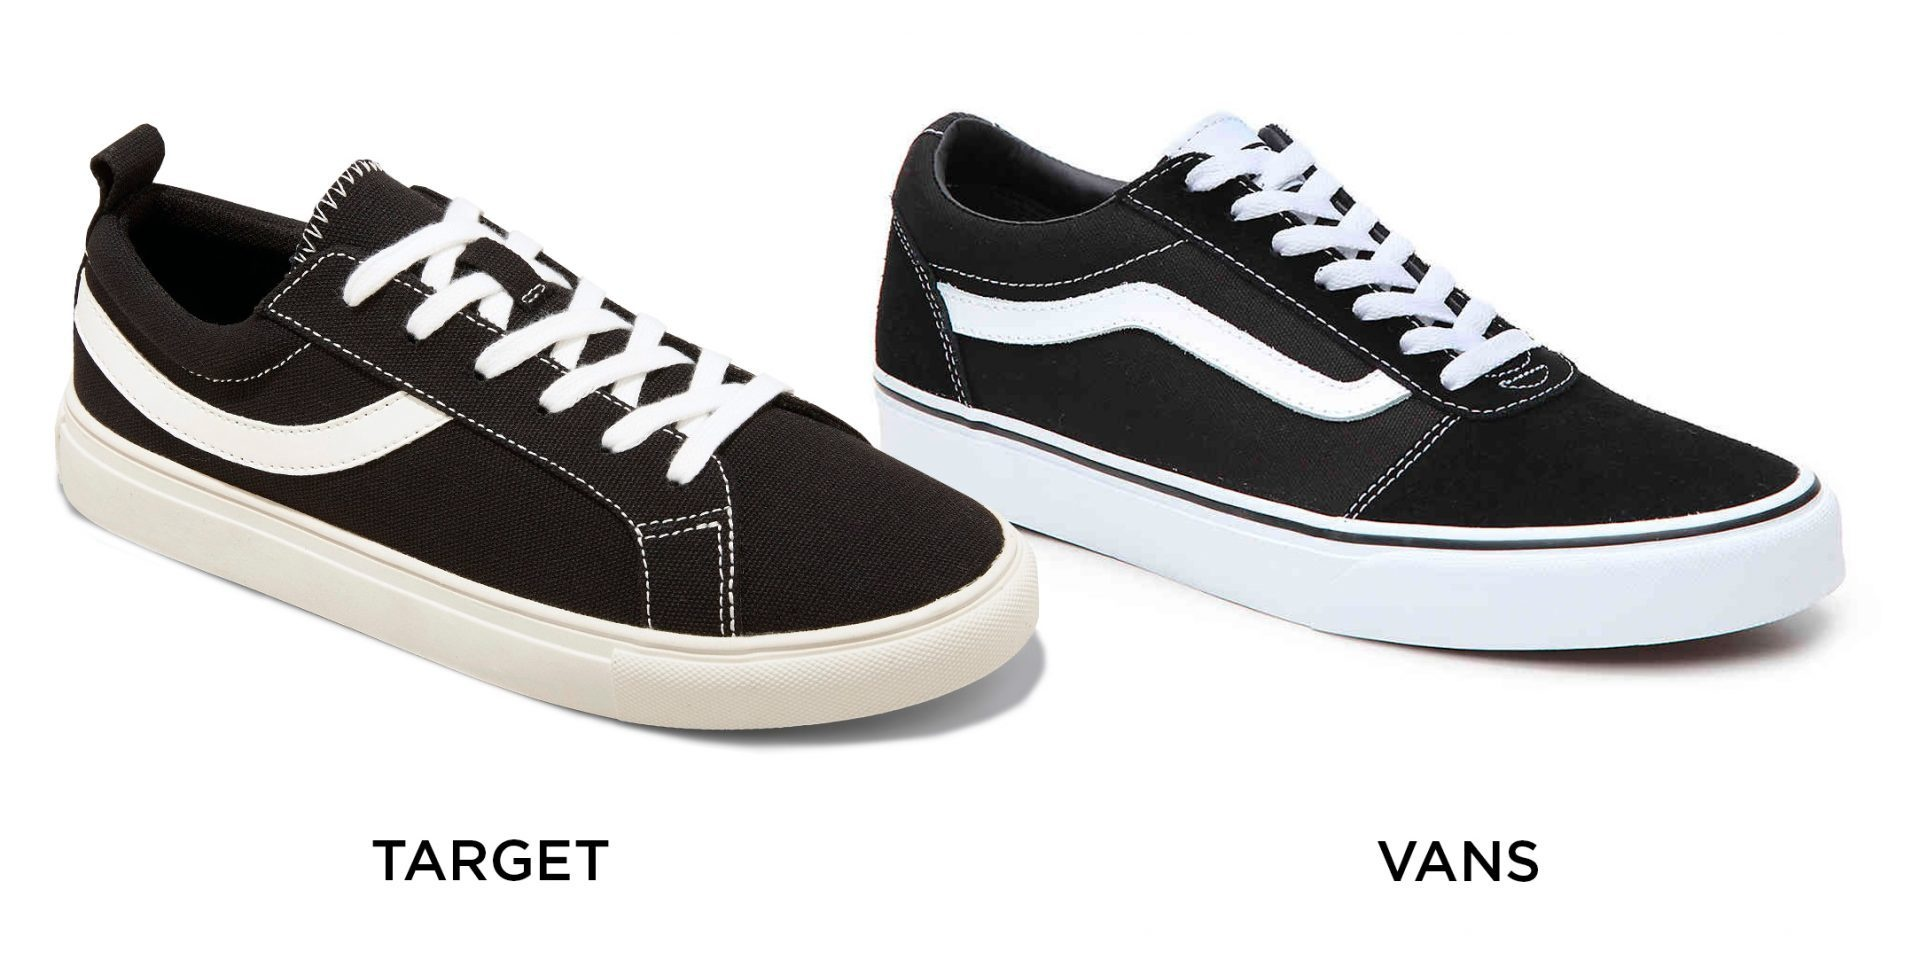 History Of Vans Shoes 14 Things You Didn't Know About Vans